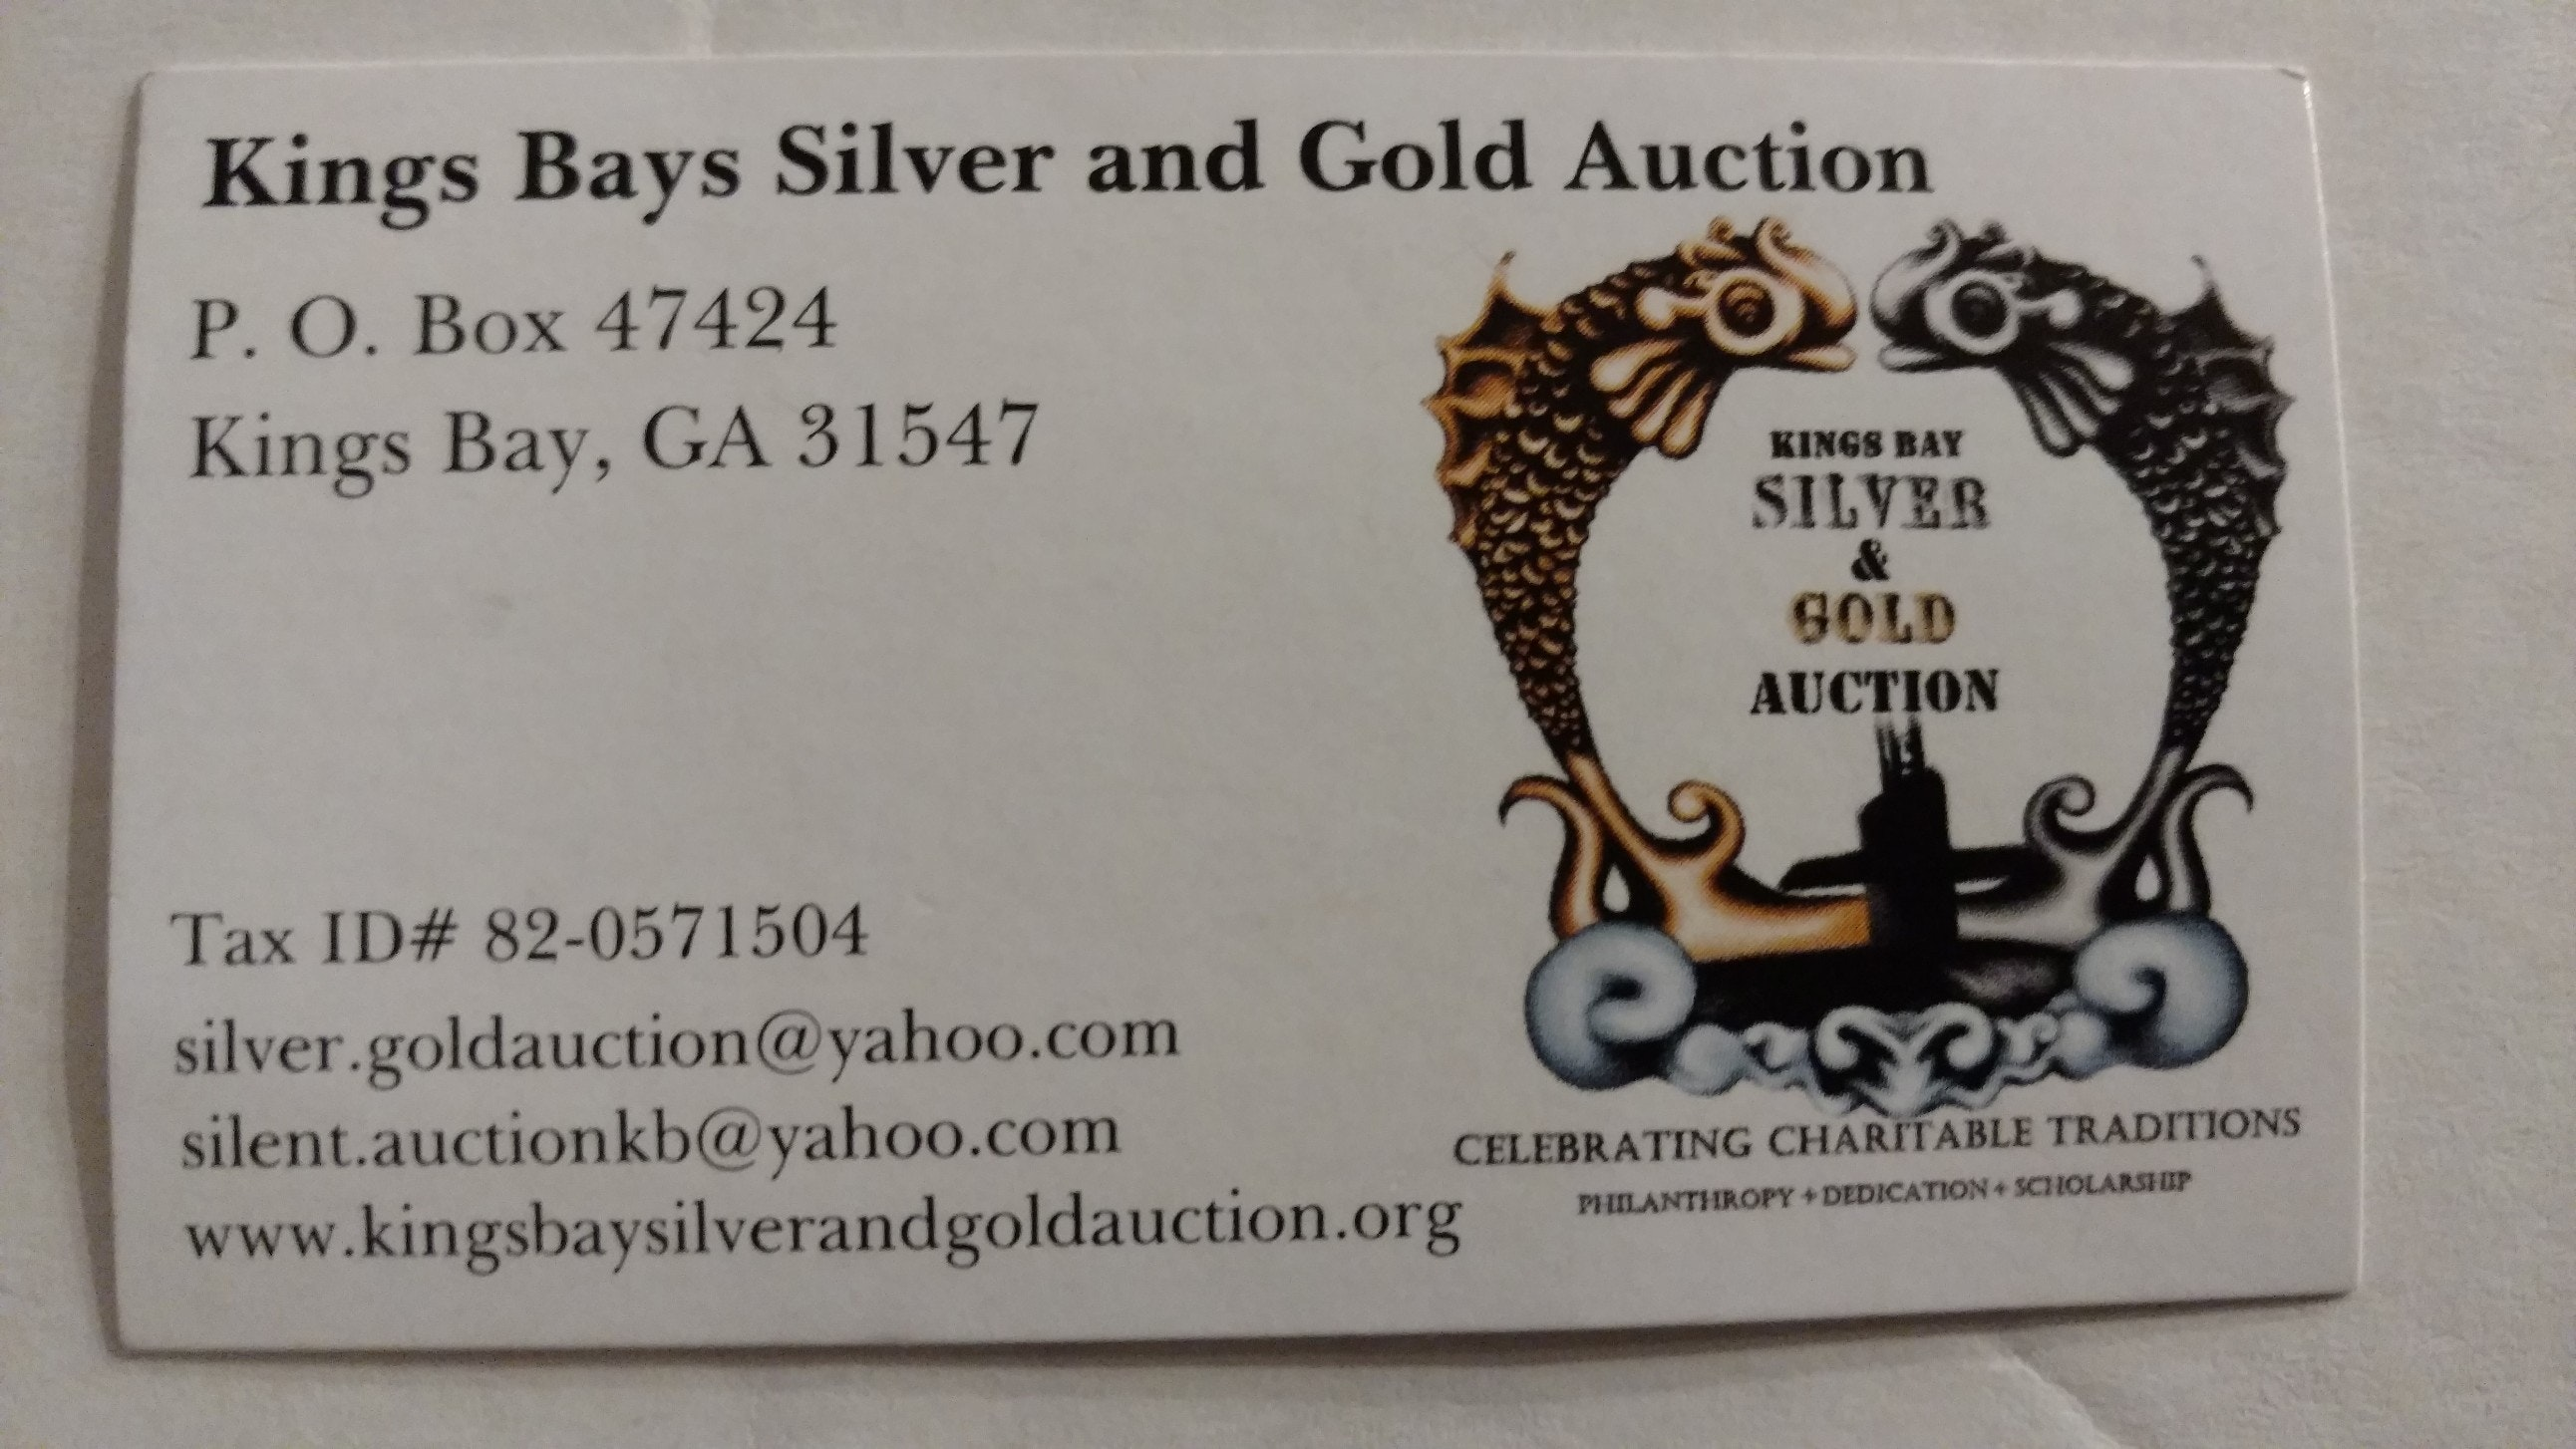 Kings Bay Silver and Gold Auction